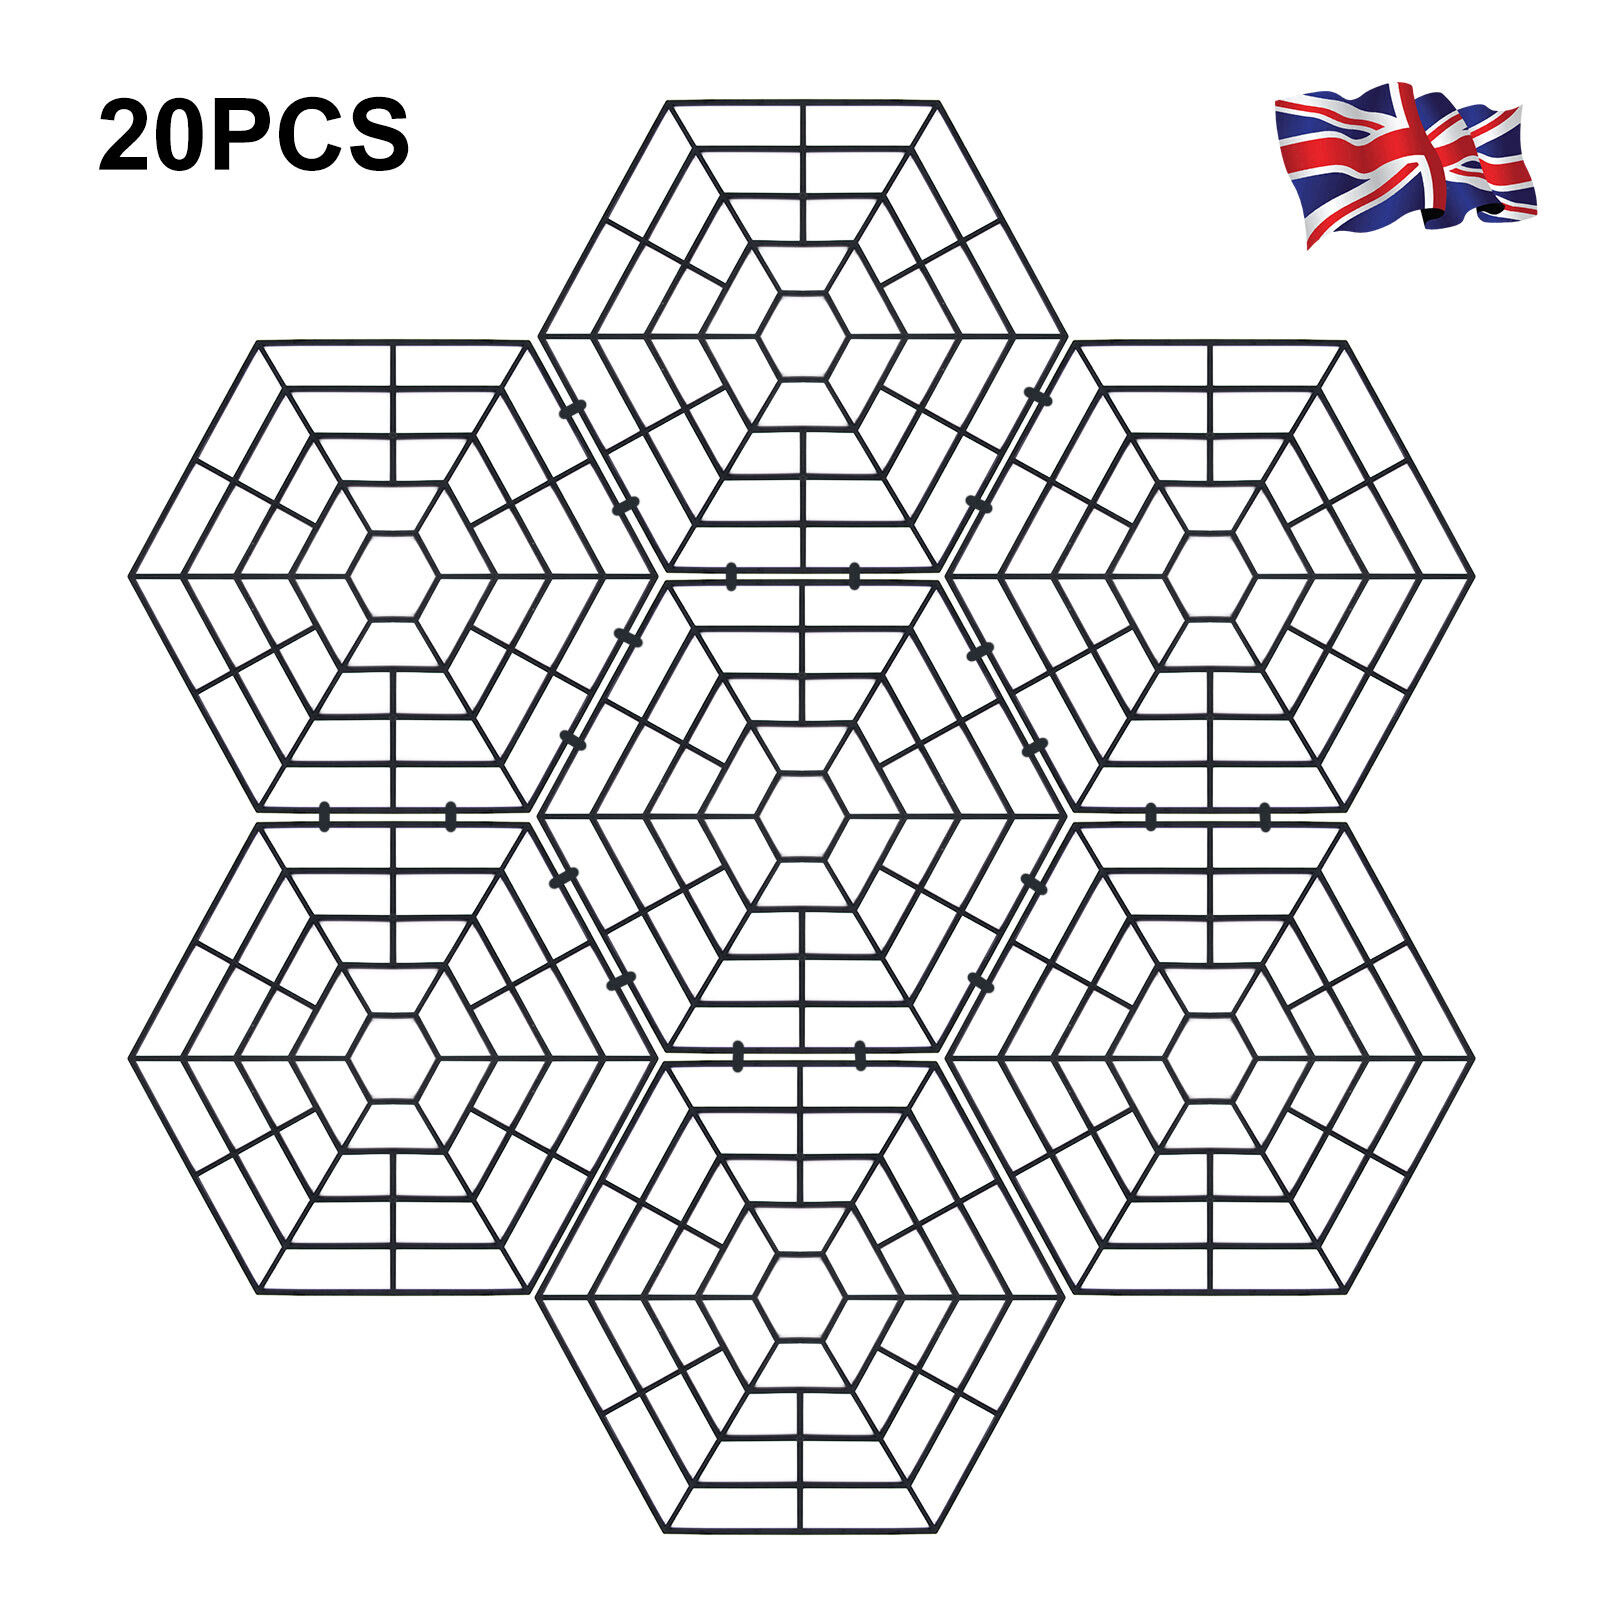 20Pcs Pond Protector Cover Net Floating Water Fish Pests Guard Grid Cats